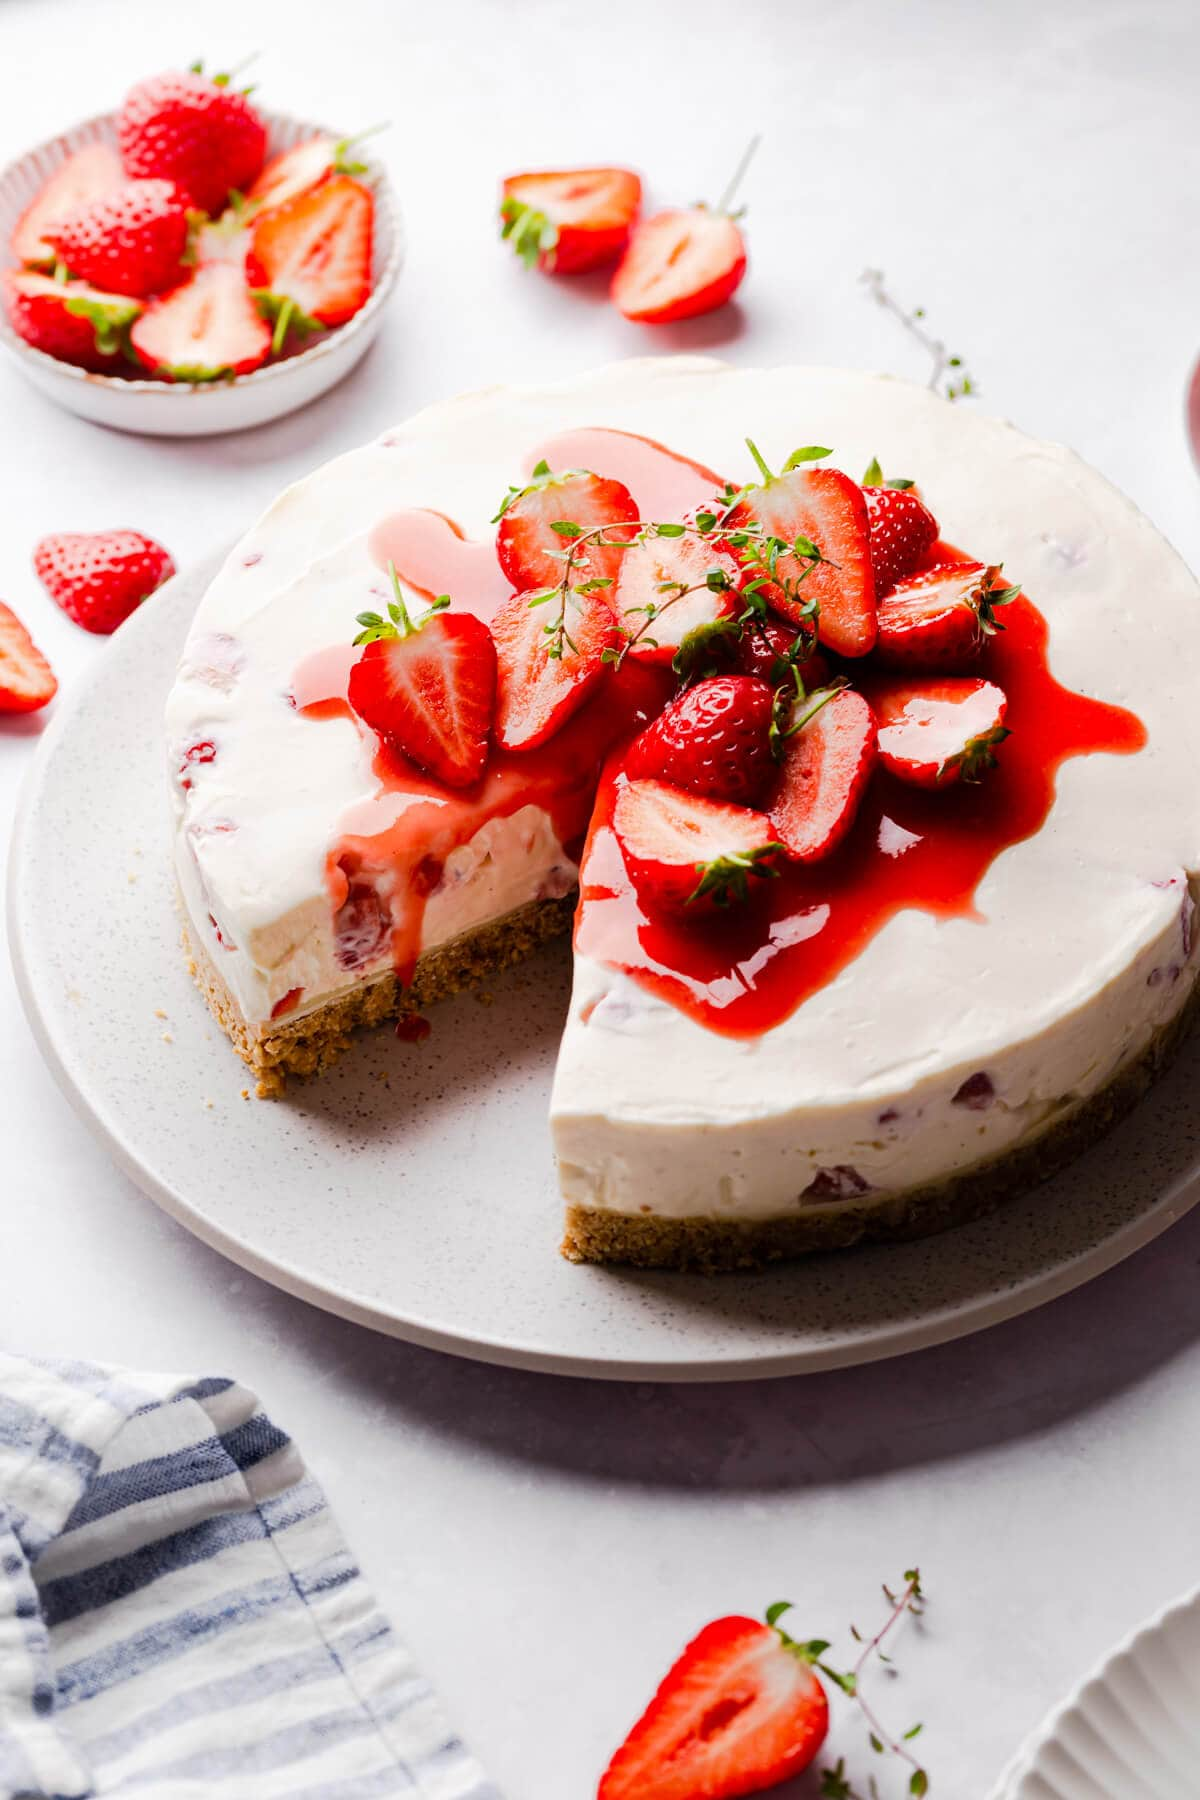 45 degree angle view of a strawberry cheesecake topped with strawberry sauce